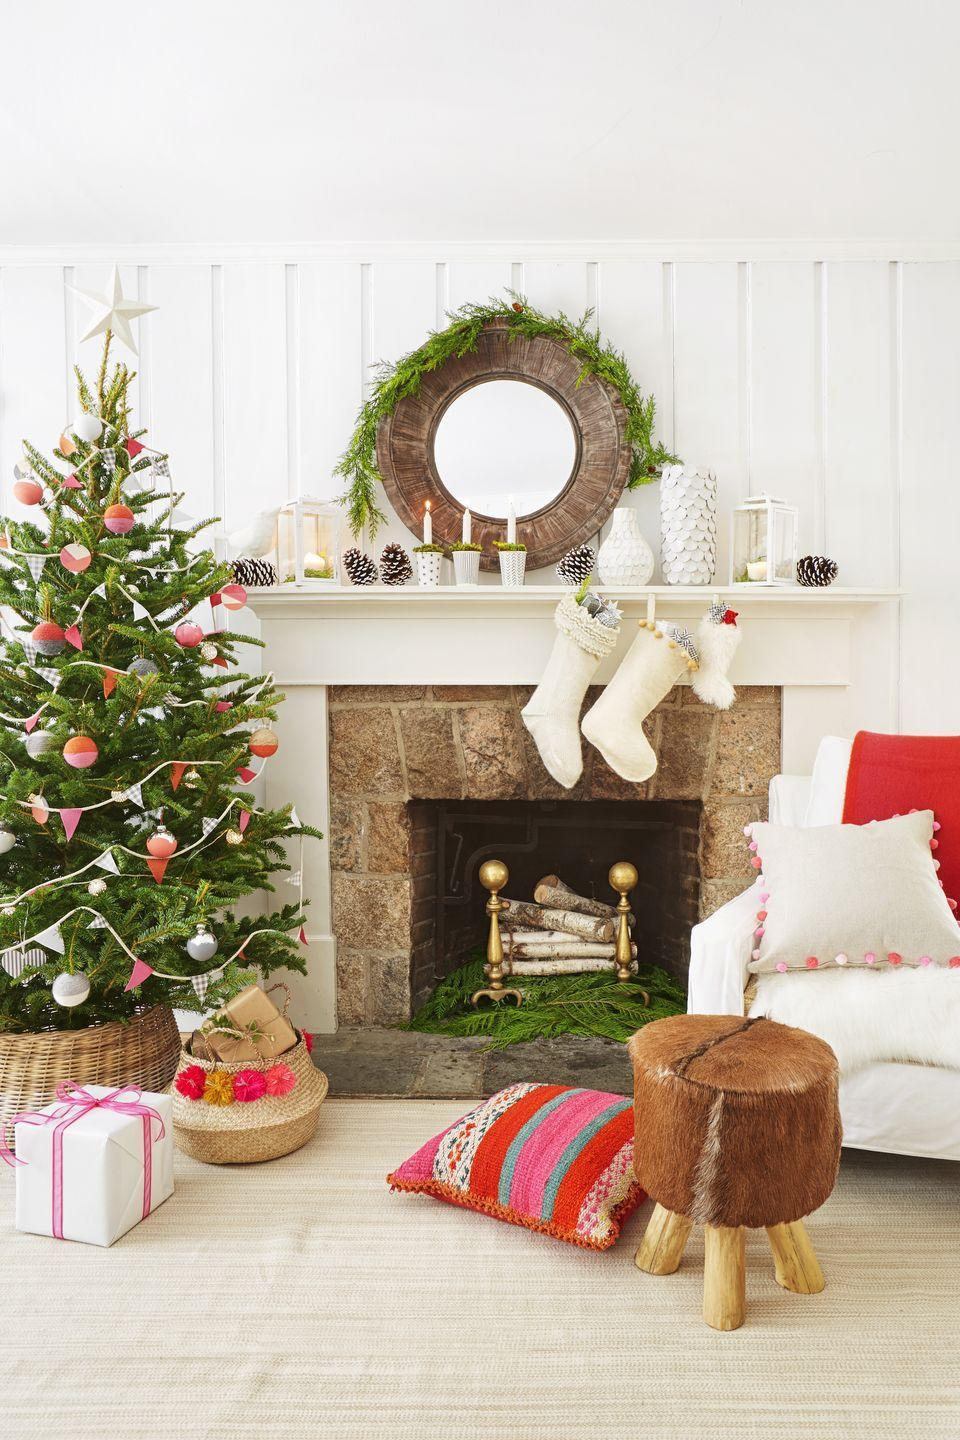 """<p>Pops of pink on <a href=""""https://www.goodhousekeeping.com/holidays/christmas-ideas/g393/homemade-christmas-ornaments/"""" rel=""""nofollow noopener"""" target=""""_blank"""" data-ylk=""""slk:DIY ornaments"""" class=""""link rapid-noclick-resp"""">DIY ornaments</a> and a pennant-style garland make this spruce extra merry. </p>"""